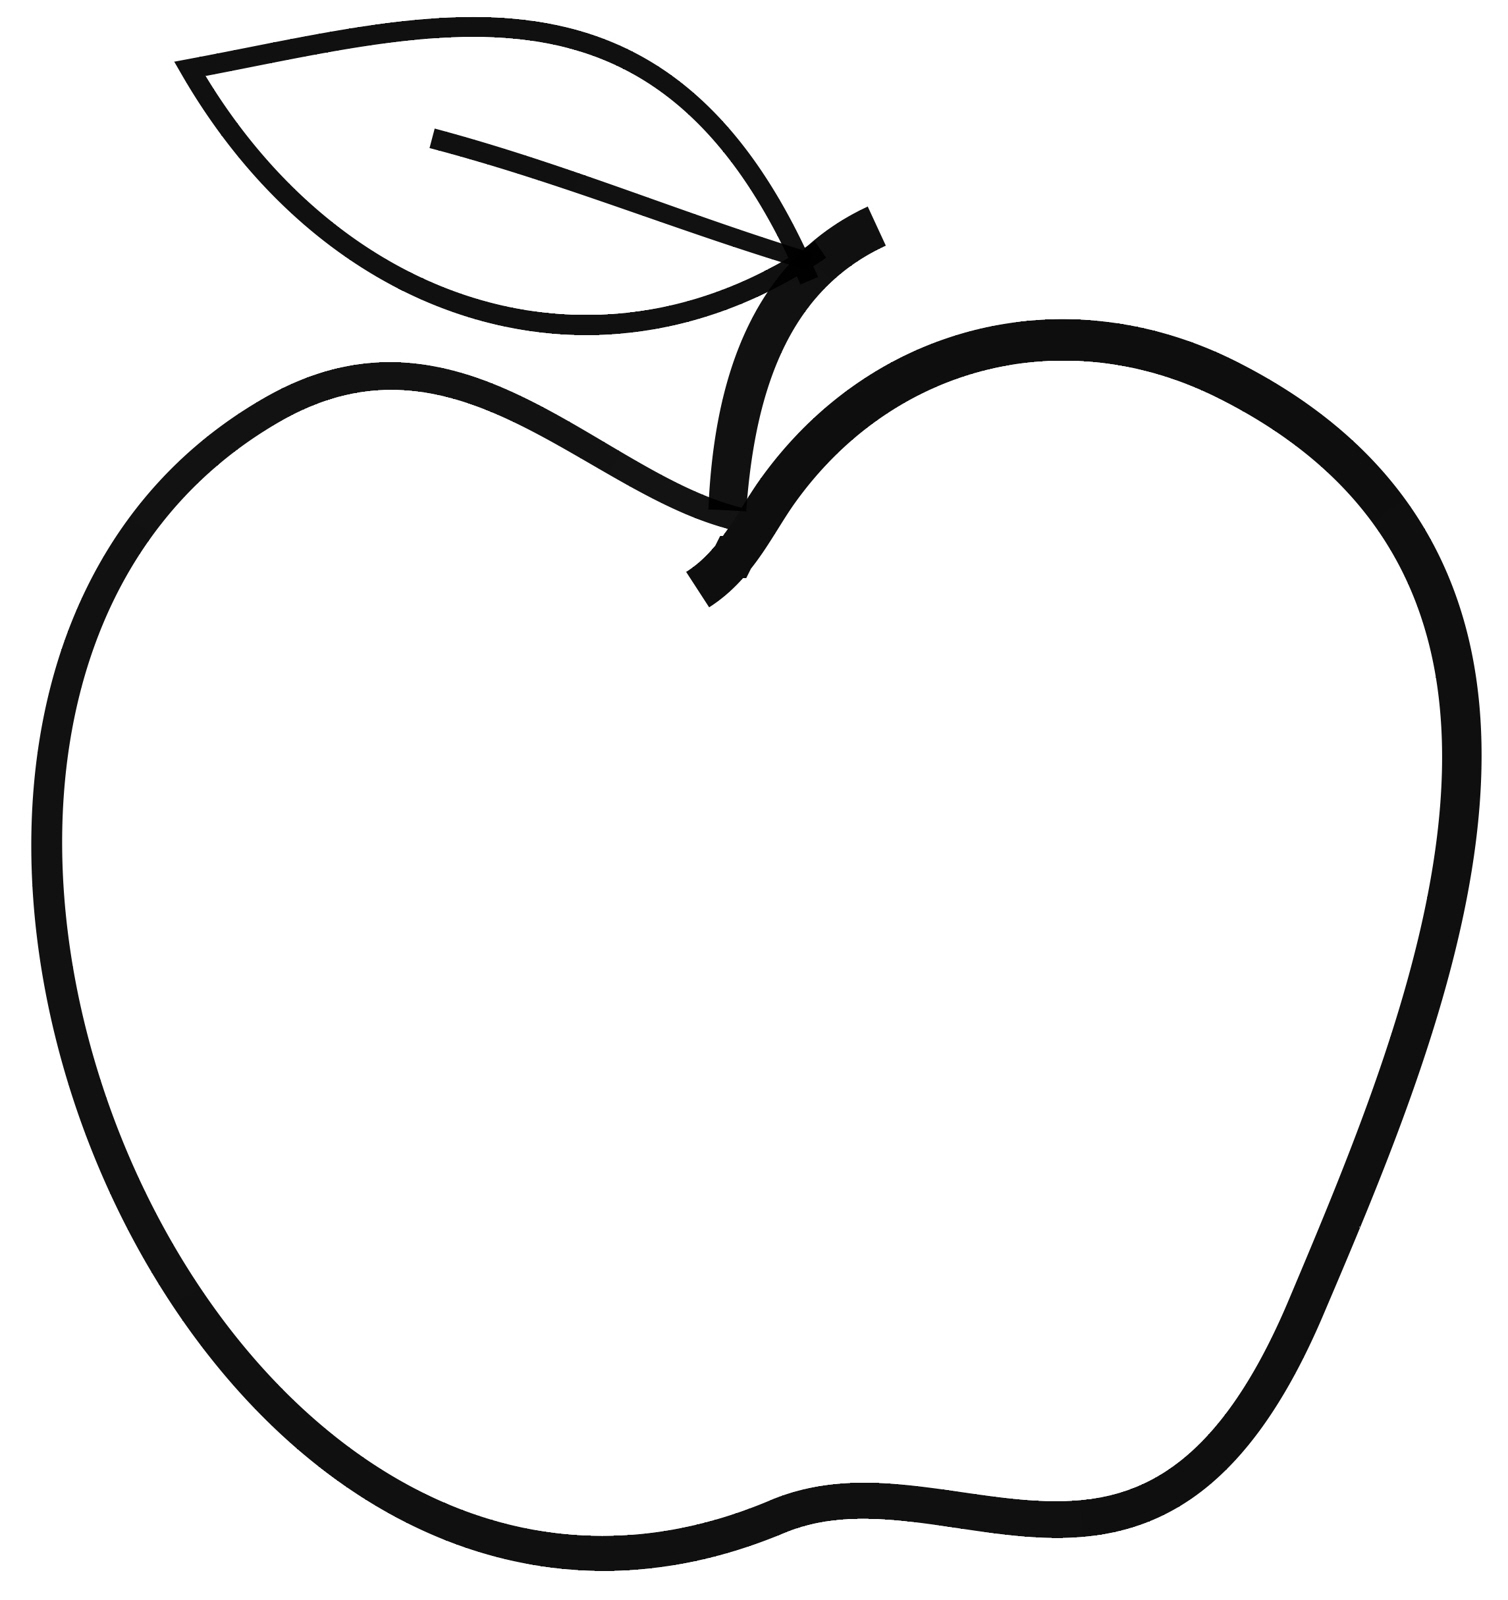 Apple clipart blackline picture library Apple clipart blackline - ClipartFest picture library